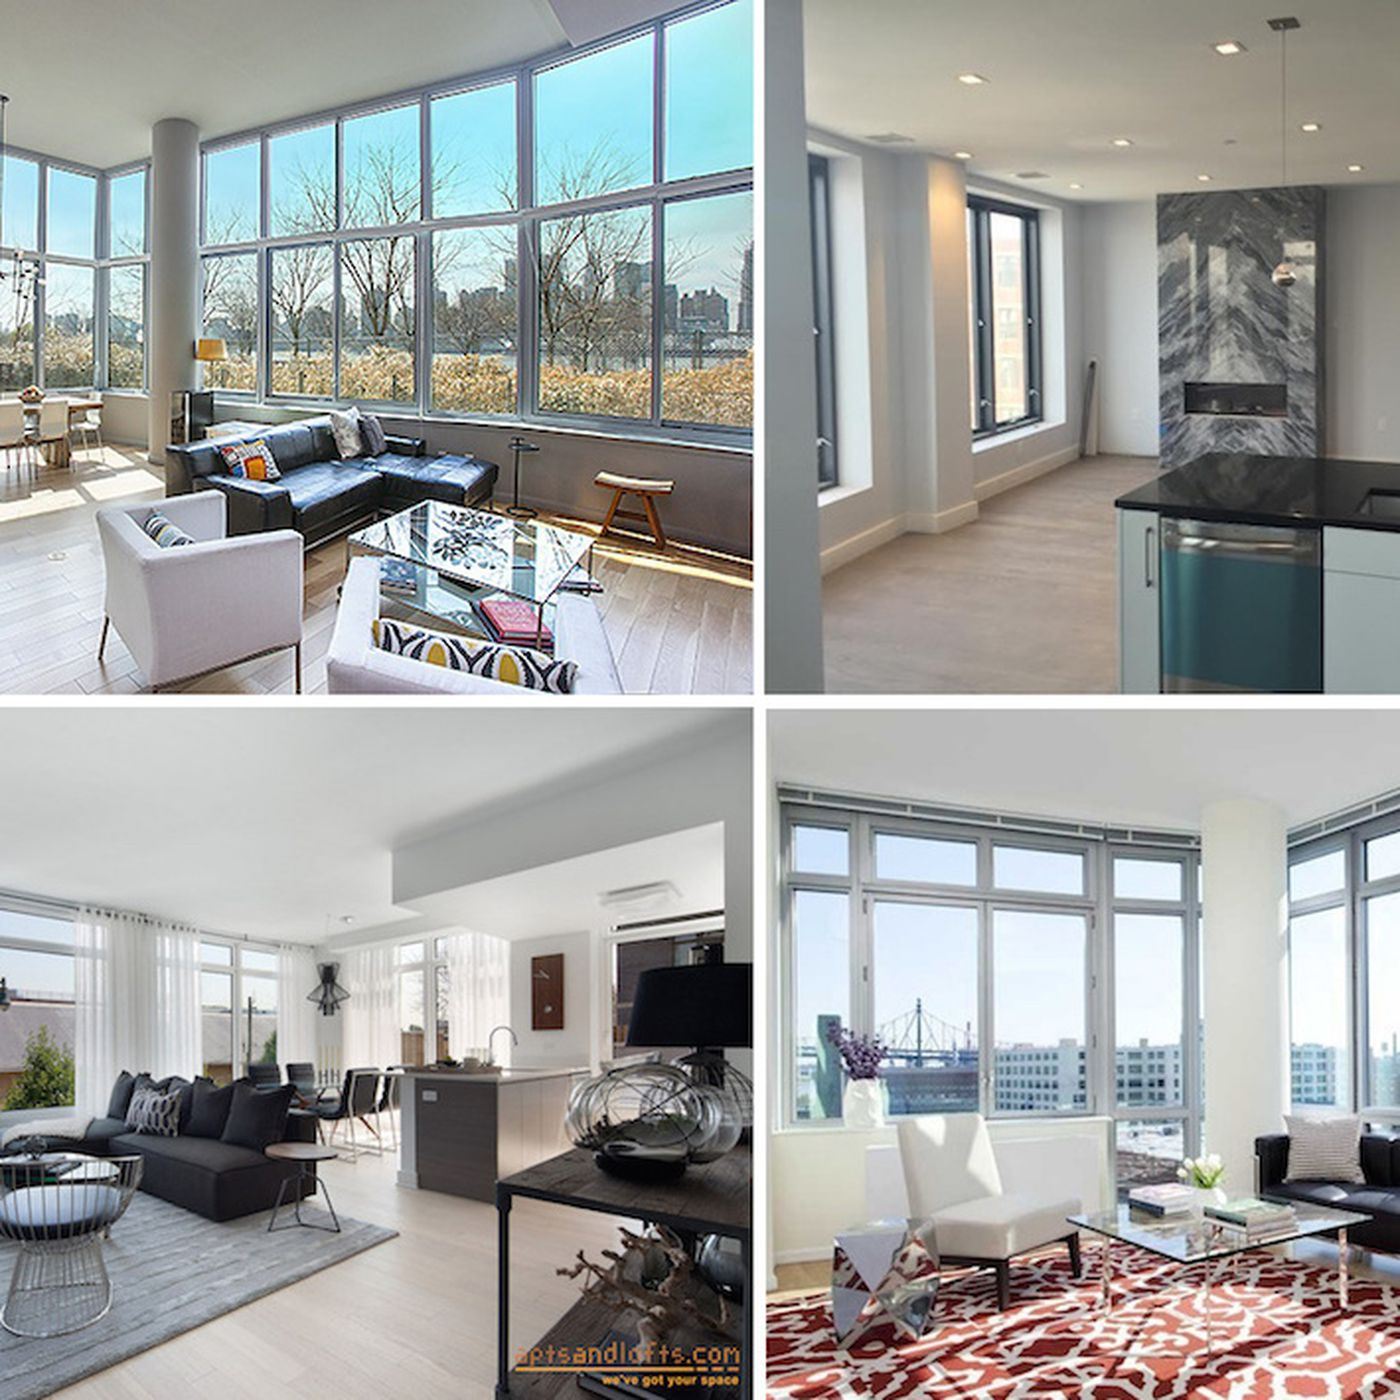 The 10 Most Expensive Apartments For Rent In Queens